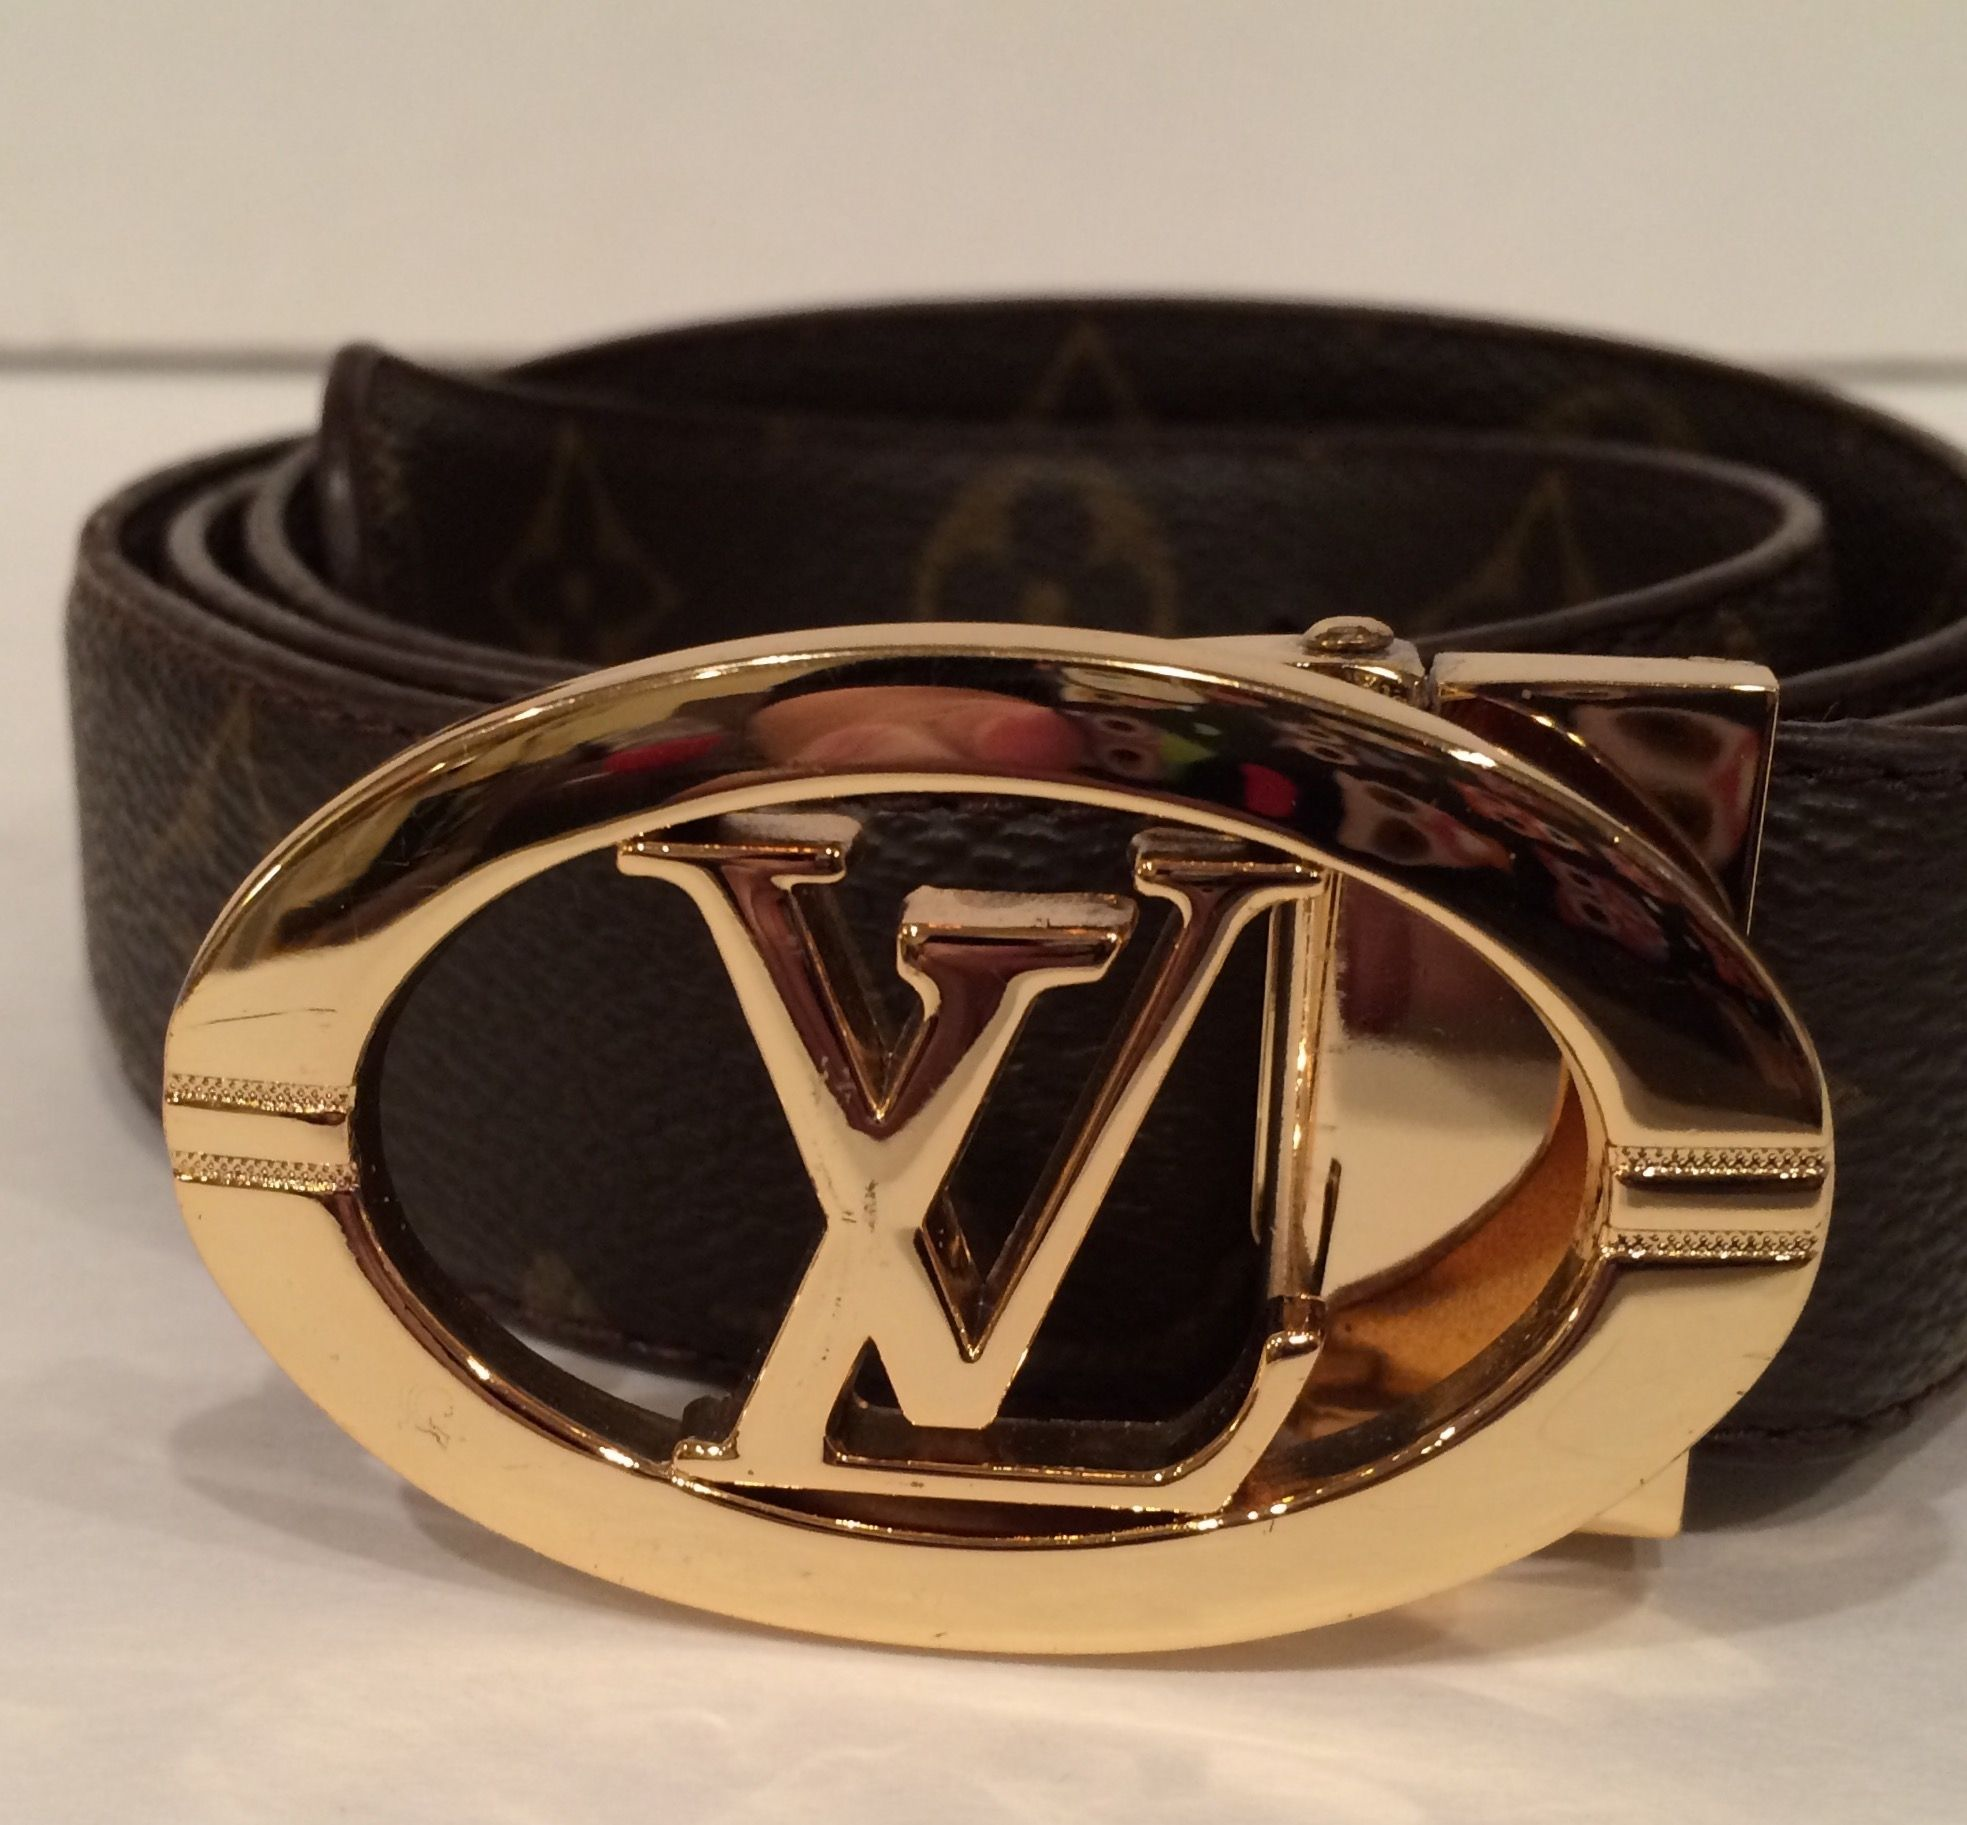 c8e7acd2014 Monogram LV Circle Belt. Get the lowest price on Monogram LV Circle Belt  and other fabulous designer clothing and accessories! Shop Tradesy now